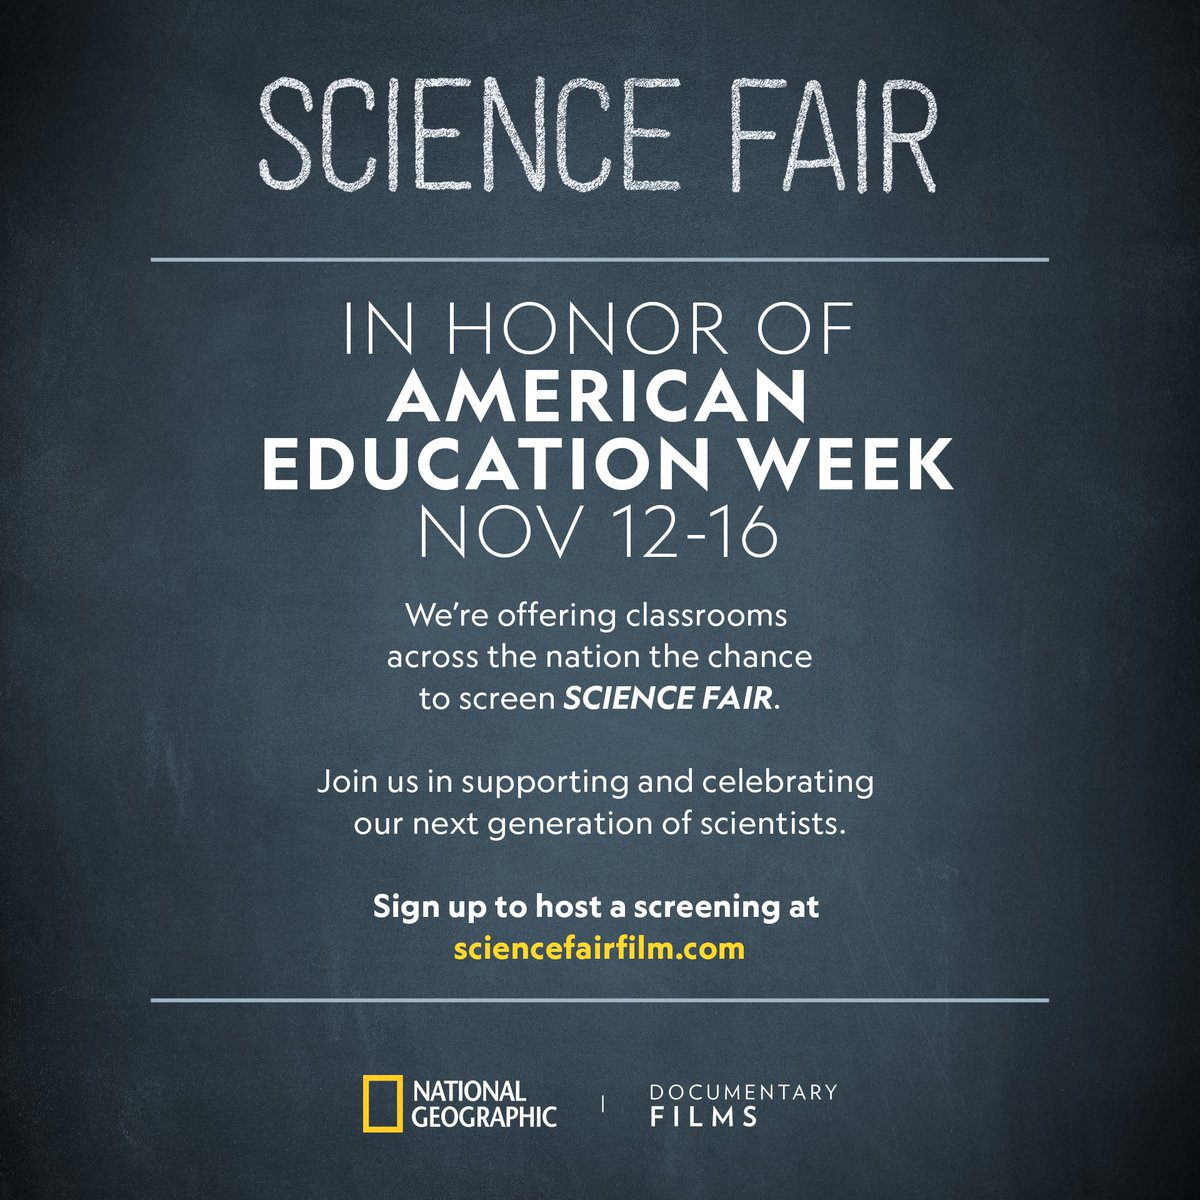 In honor of #AmericanEducationWeek, we're inviting teachers & students nationwide to watch the inspiring documentary  Fai@sciencer this November! Fill out this form to receive free DVDs & educational materials: .https://t.co/0gXmyNIu8S